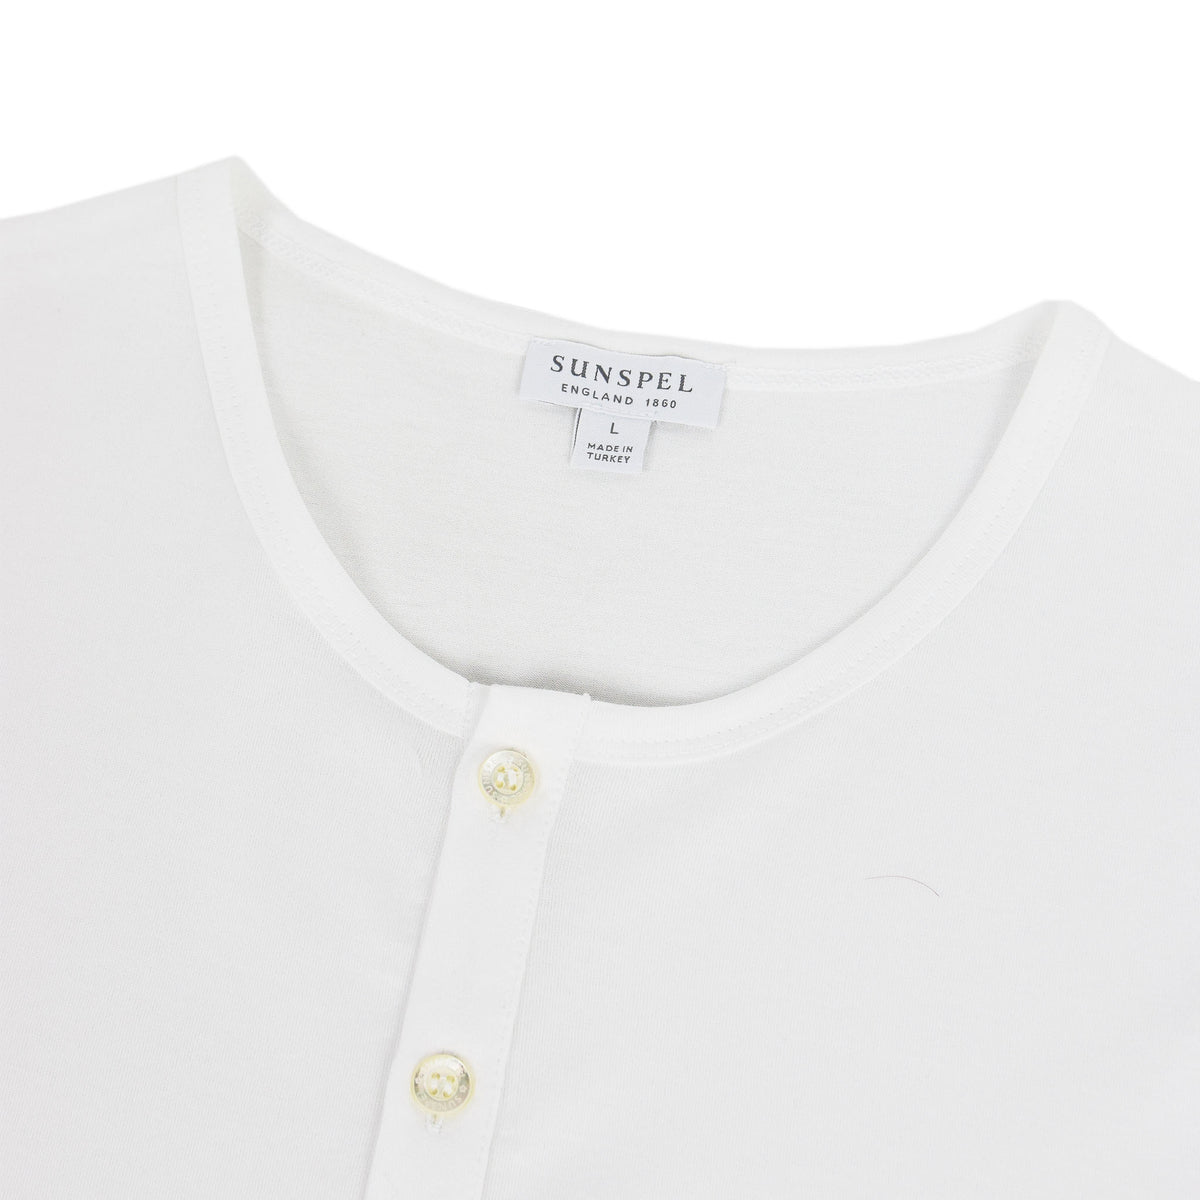 Sunspel Classic Henley T-Shirt White collar